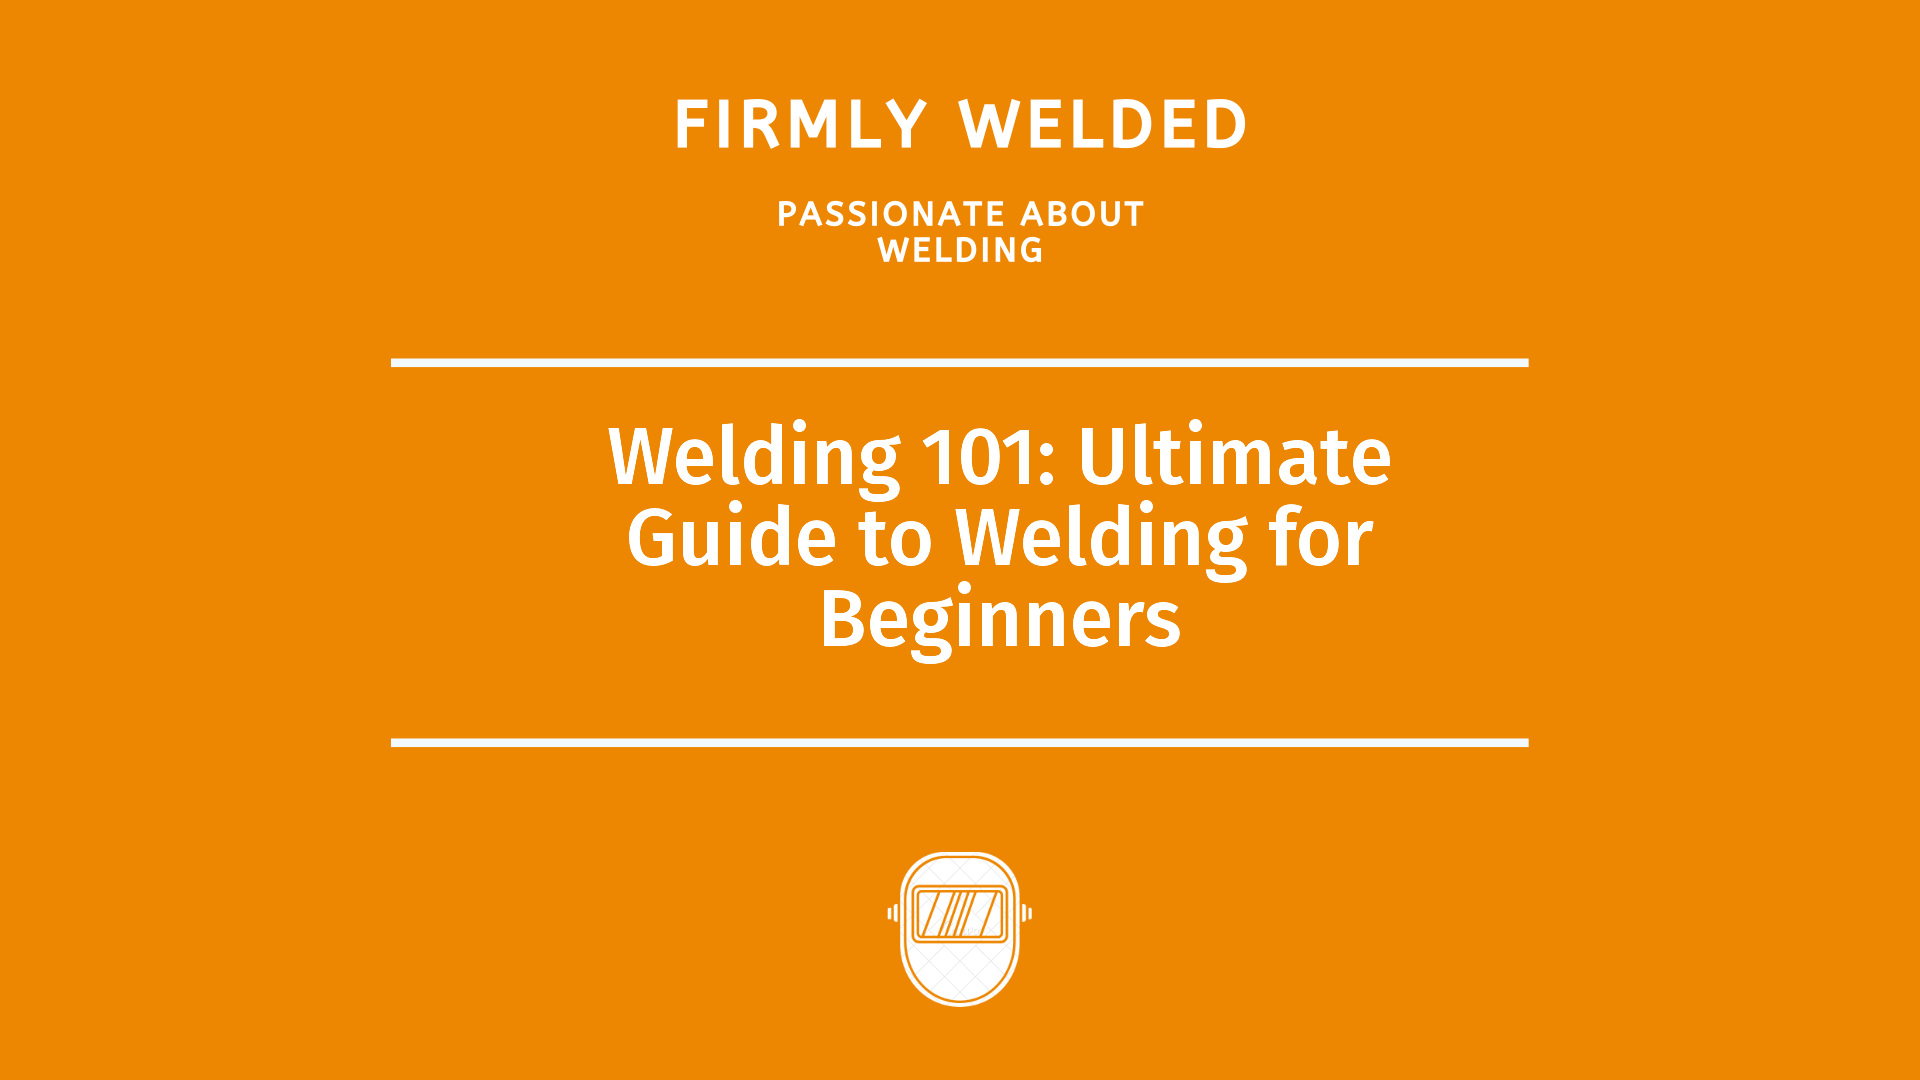 Welding 101: Ultimate Guide to Welding for Beginners